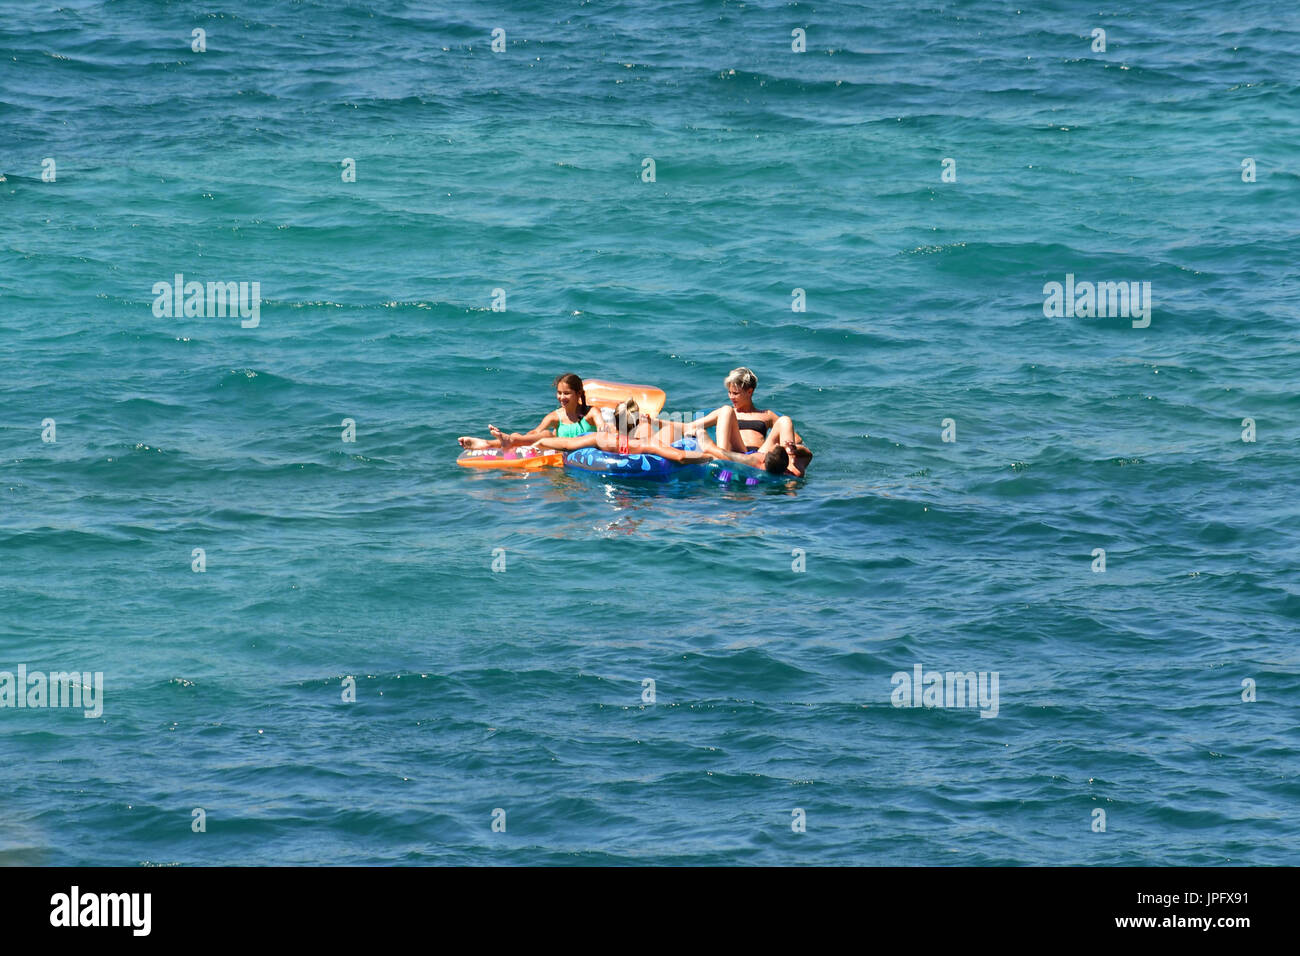 Nafplion, Greece. 02nd Aug, 2017. Greece, Nafplion, 2 August 2017. Tourists enjoy their swim in the beautiful Karathonas beach in the city of Nafplio, in the south-eastern Peloponnese. Credit: VANGELIS BOUGIOTIS/Alamy Live News - Stock Image